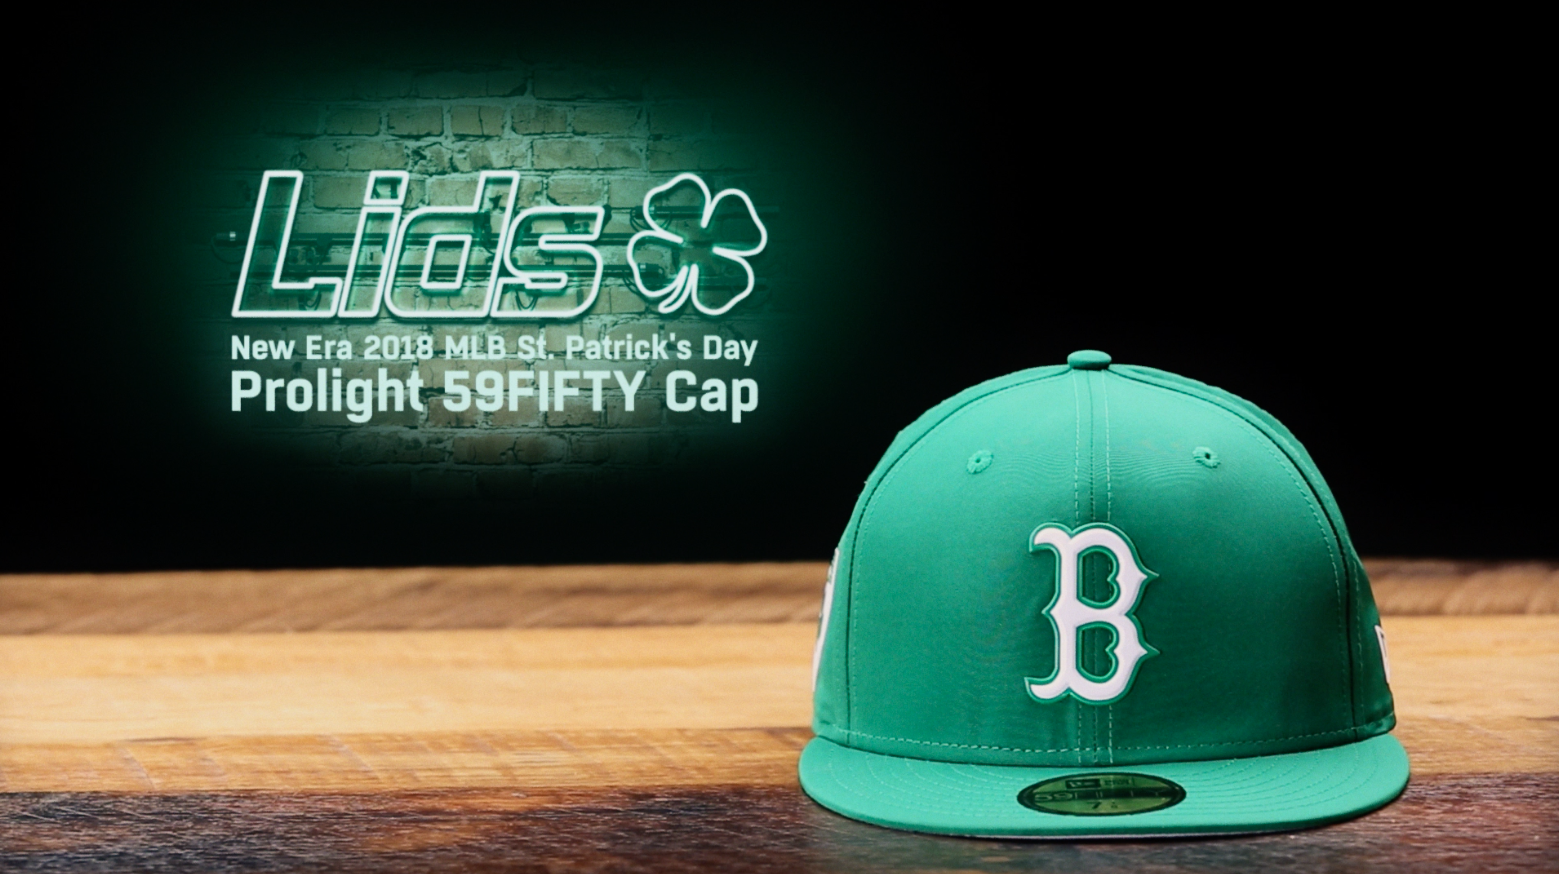 659d76d2dccbac With St. Patrick's Day coming up, that also means the start of baseball  season is almost here! Celebrate the final days of Spring Training with the  2018 MLB ...